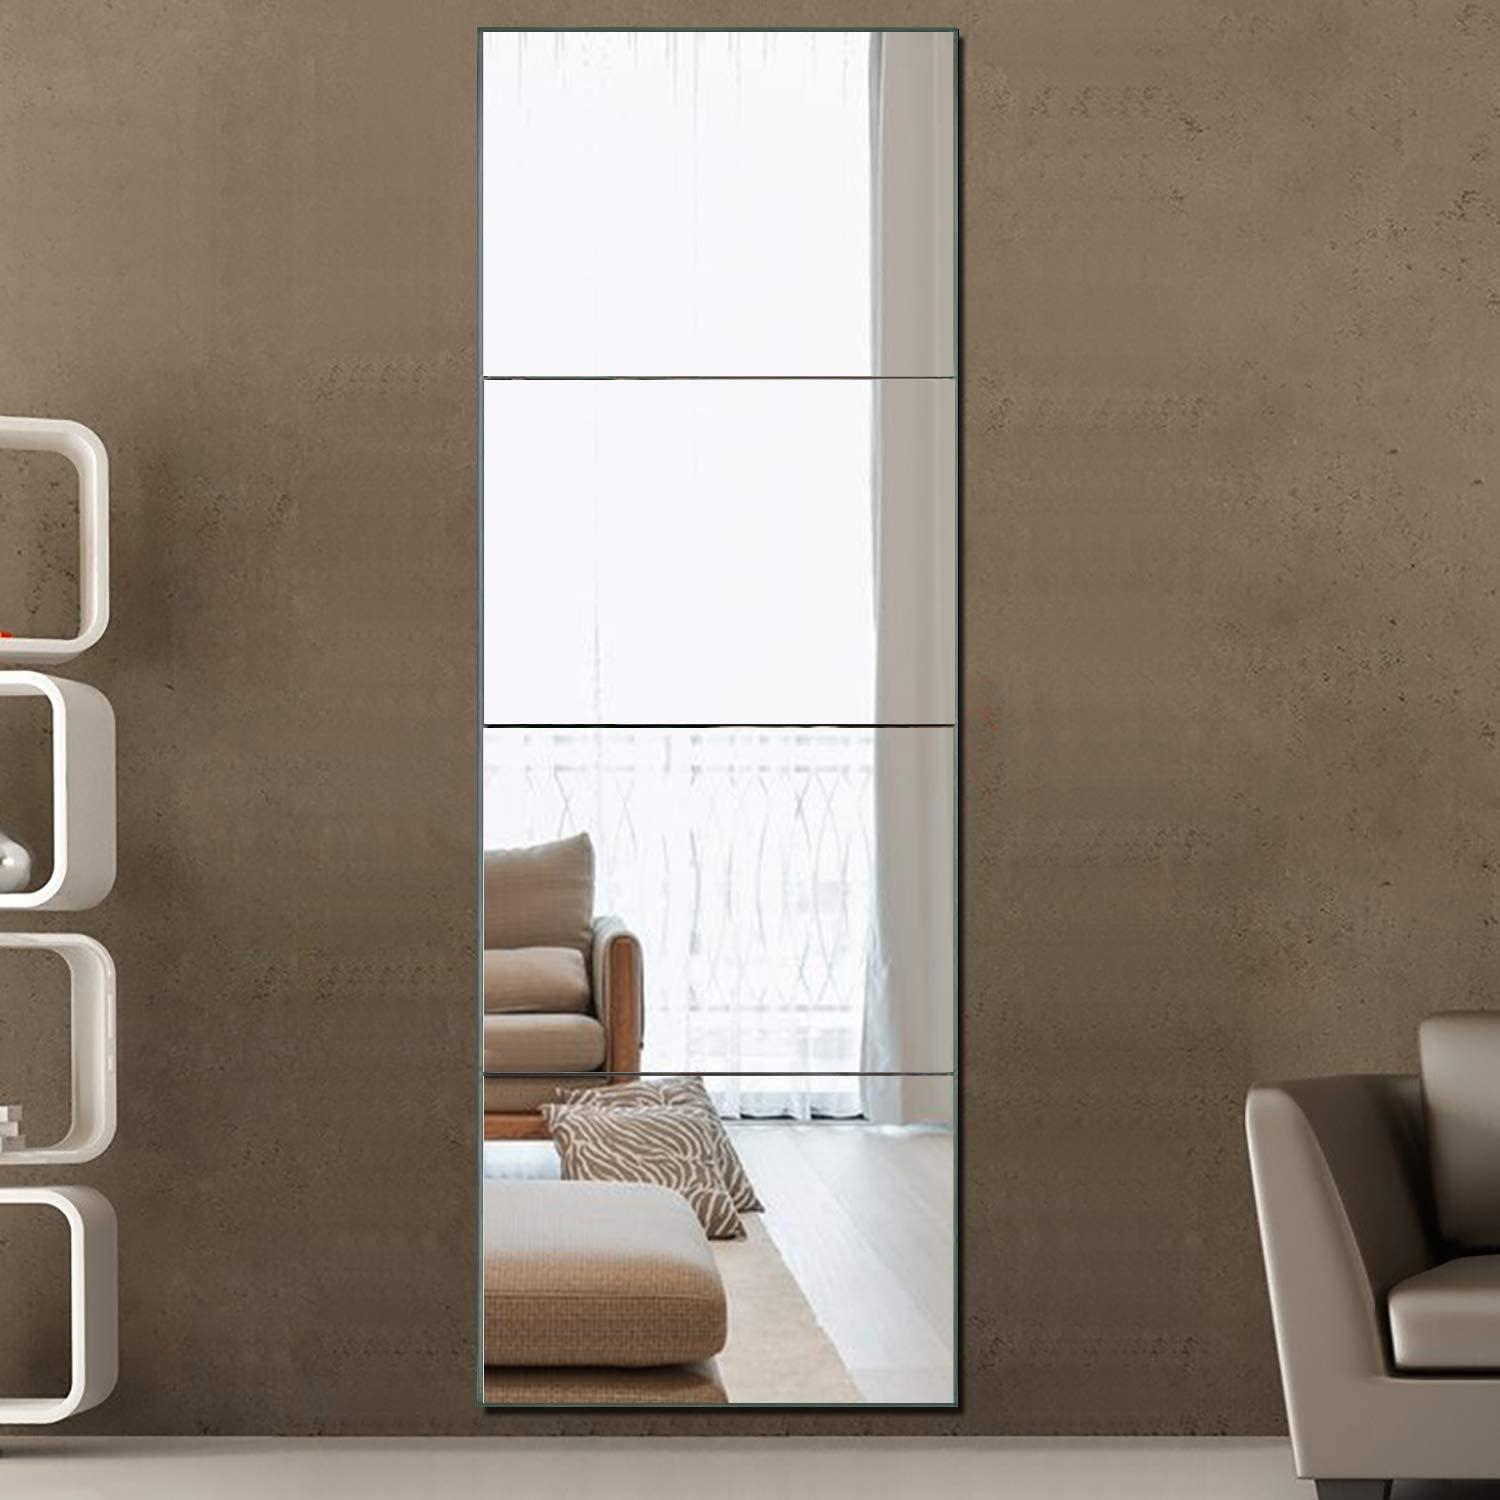 Neutype Frameless Full Length Mirror Wall Mirror Tiles Set Of 4 Large Size Rectangular Glass Flat Decoration Mirrors For Bathroom Living Room Or Bedroom 12 X 16 4 Piece Set Walmart Com